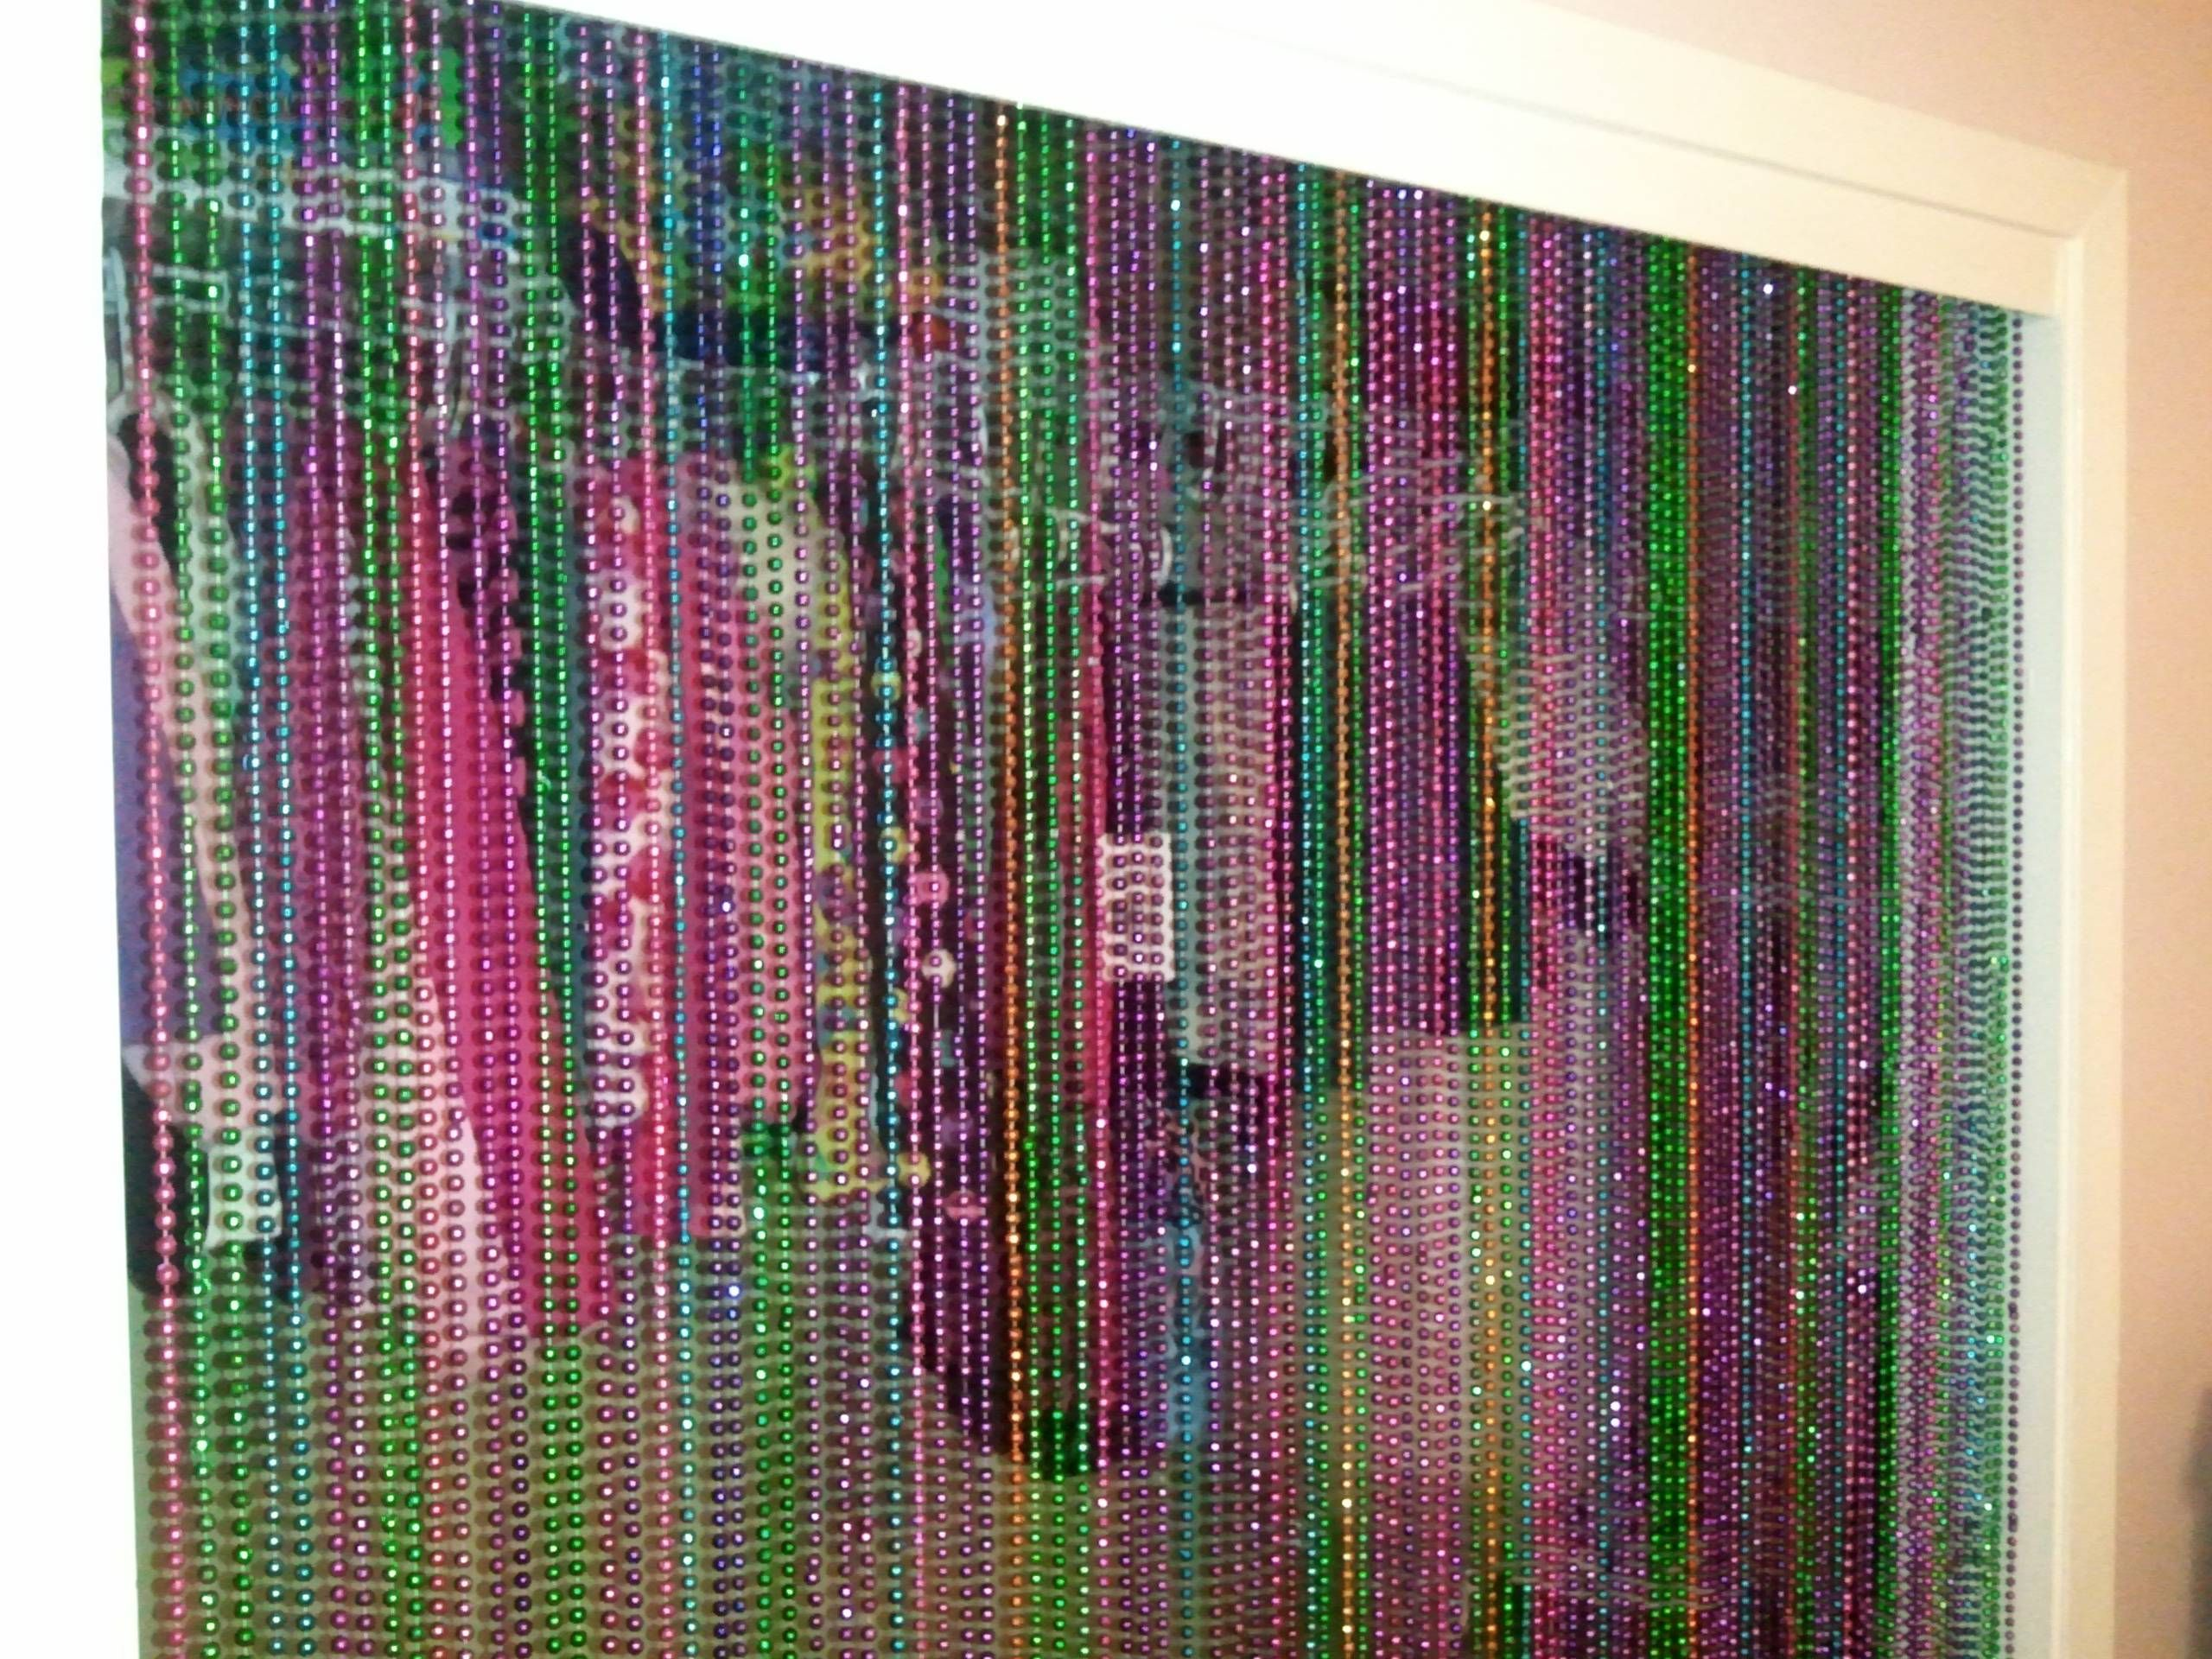 Closet Beads Curtains Ways To Reuse Mardi Gras Beads Cut In Half To Strings Of